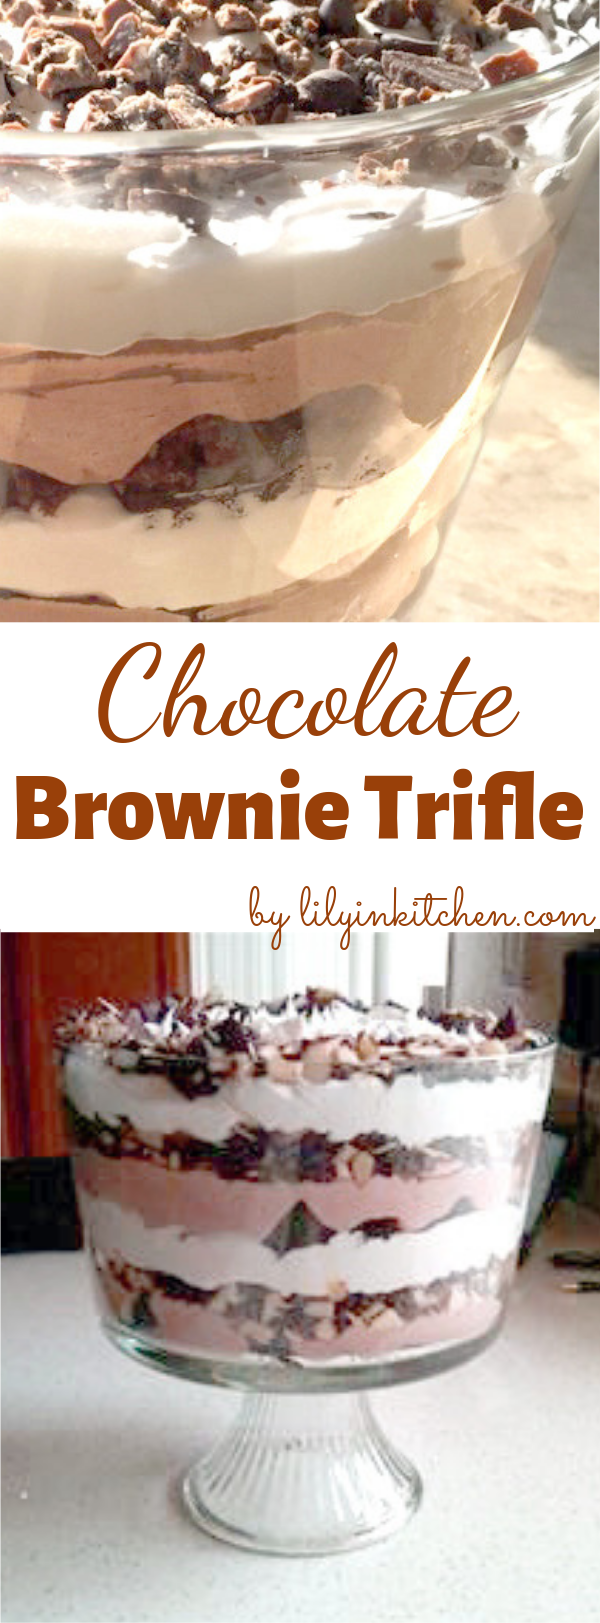 This rich and delicious Chocolate Brownie Trifle recipe is so good! Easy to assemble, it  will satisfy all your chocolate cravings. It features rich, chocolate pudding and chocolate brownies. #triplechocolatetrifle #chocolatetrifle #chocolate #triplechocolate #chocolaterecipe #chocolatedessert #dessert #trifle #trifledessert #recipes #recipe #food #cooking #RecipeIdeas